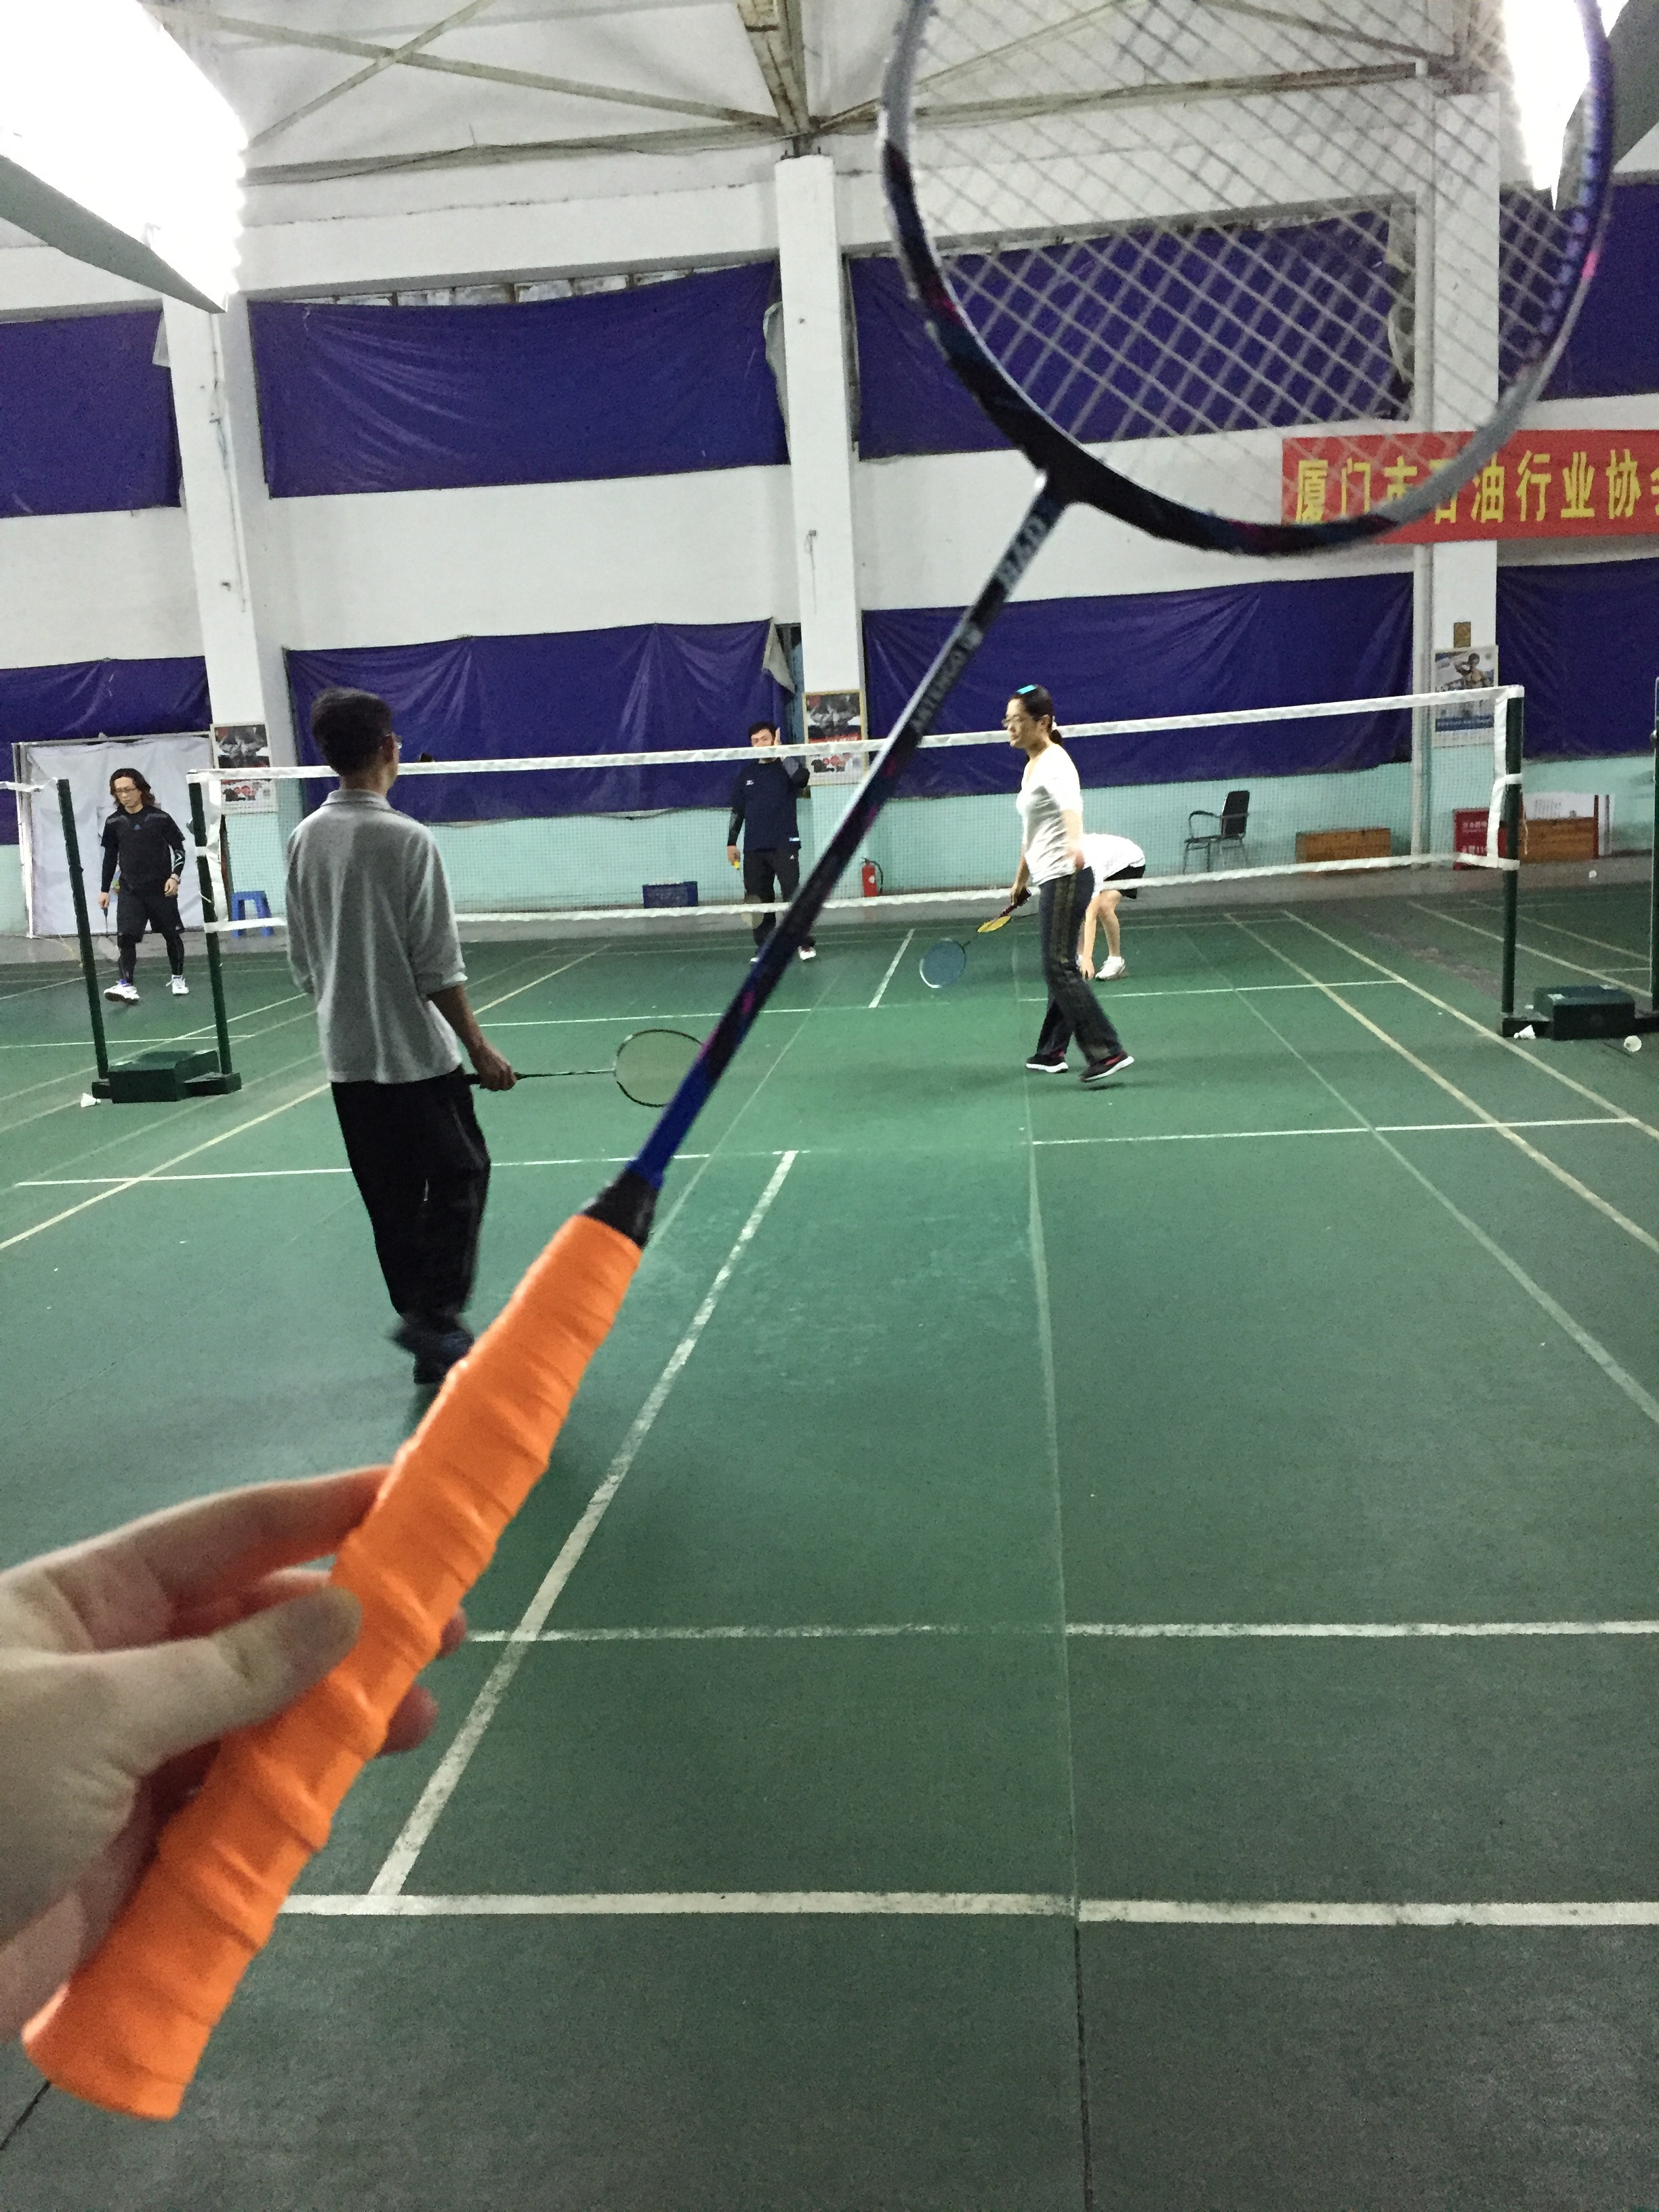 Badminton racket wrap